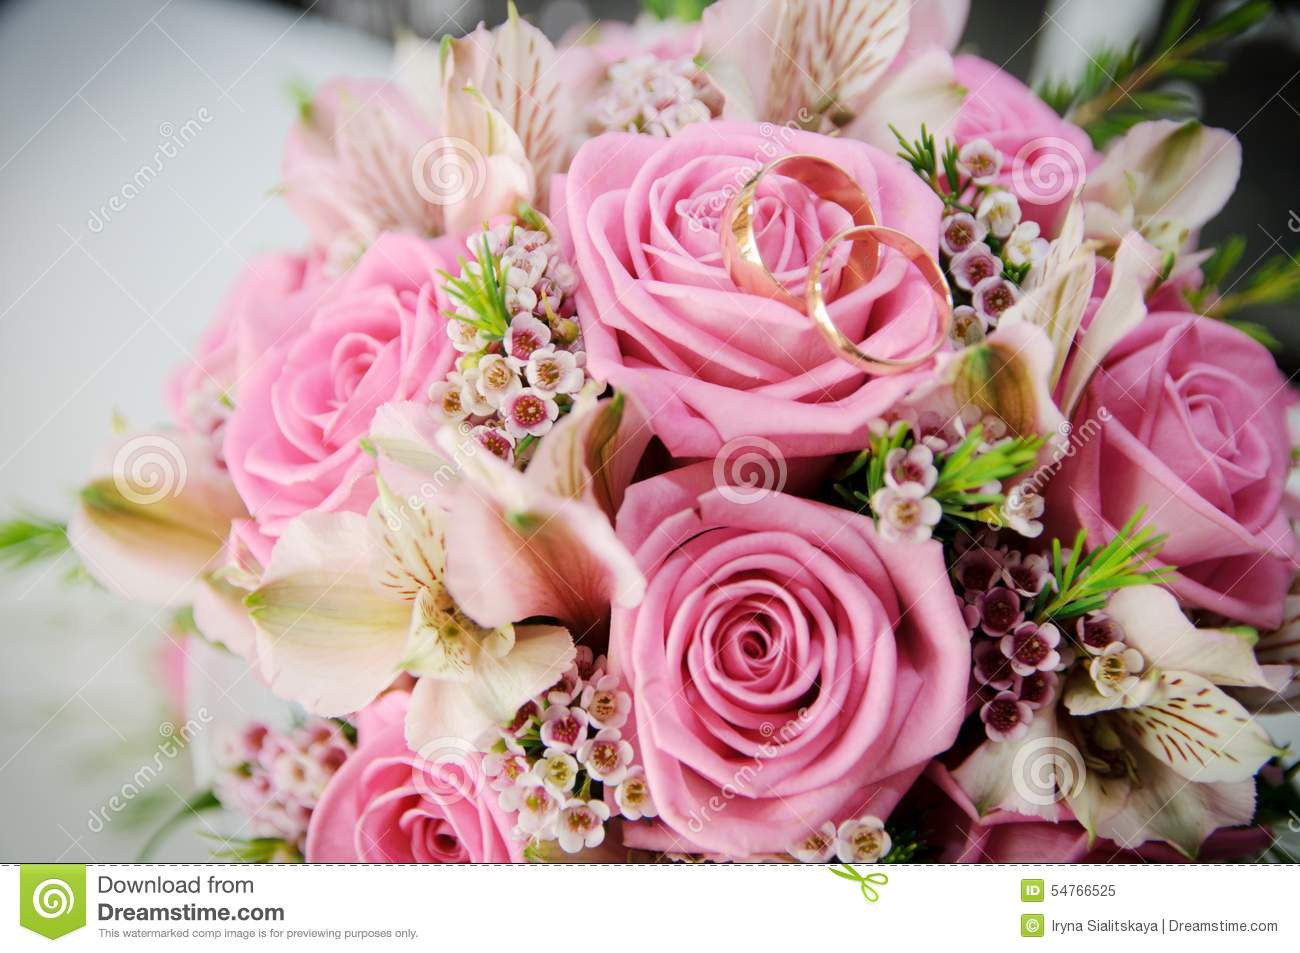 bouquet hd romantic widescreen wedding bridal pink htm holiday window rings wallpaper flowers roses